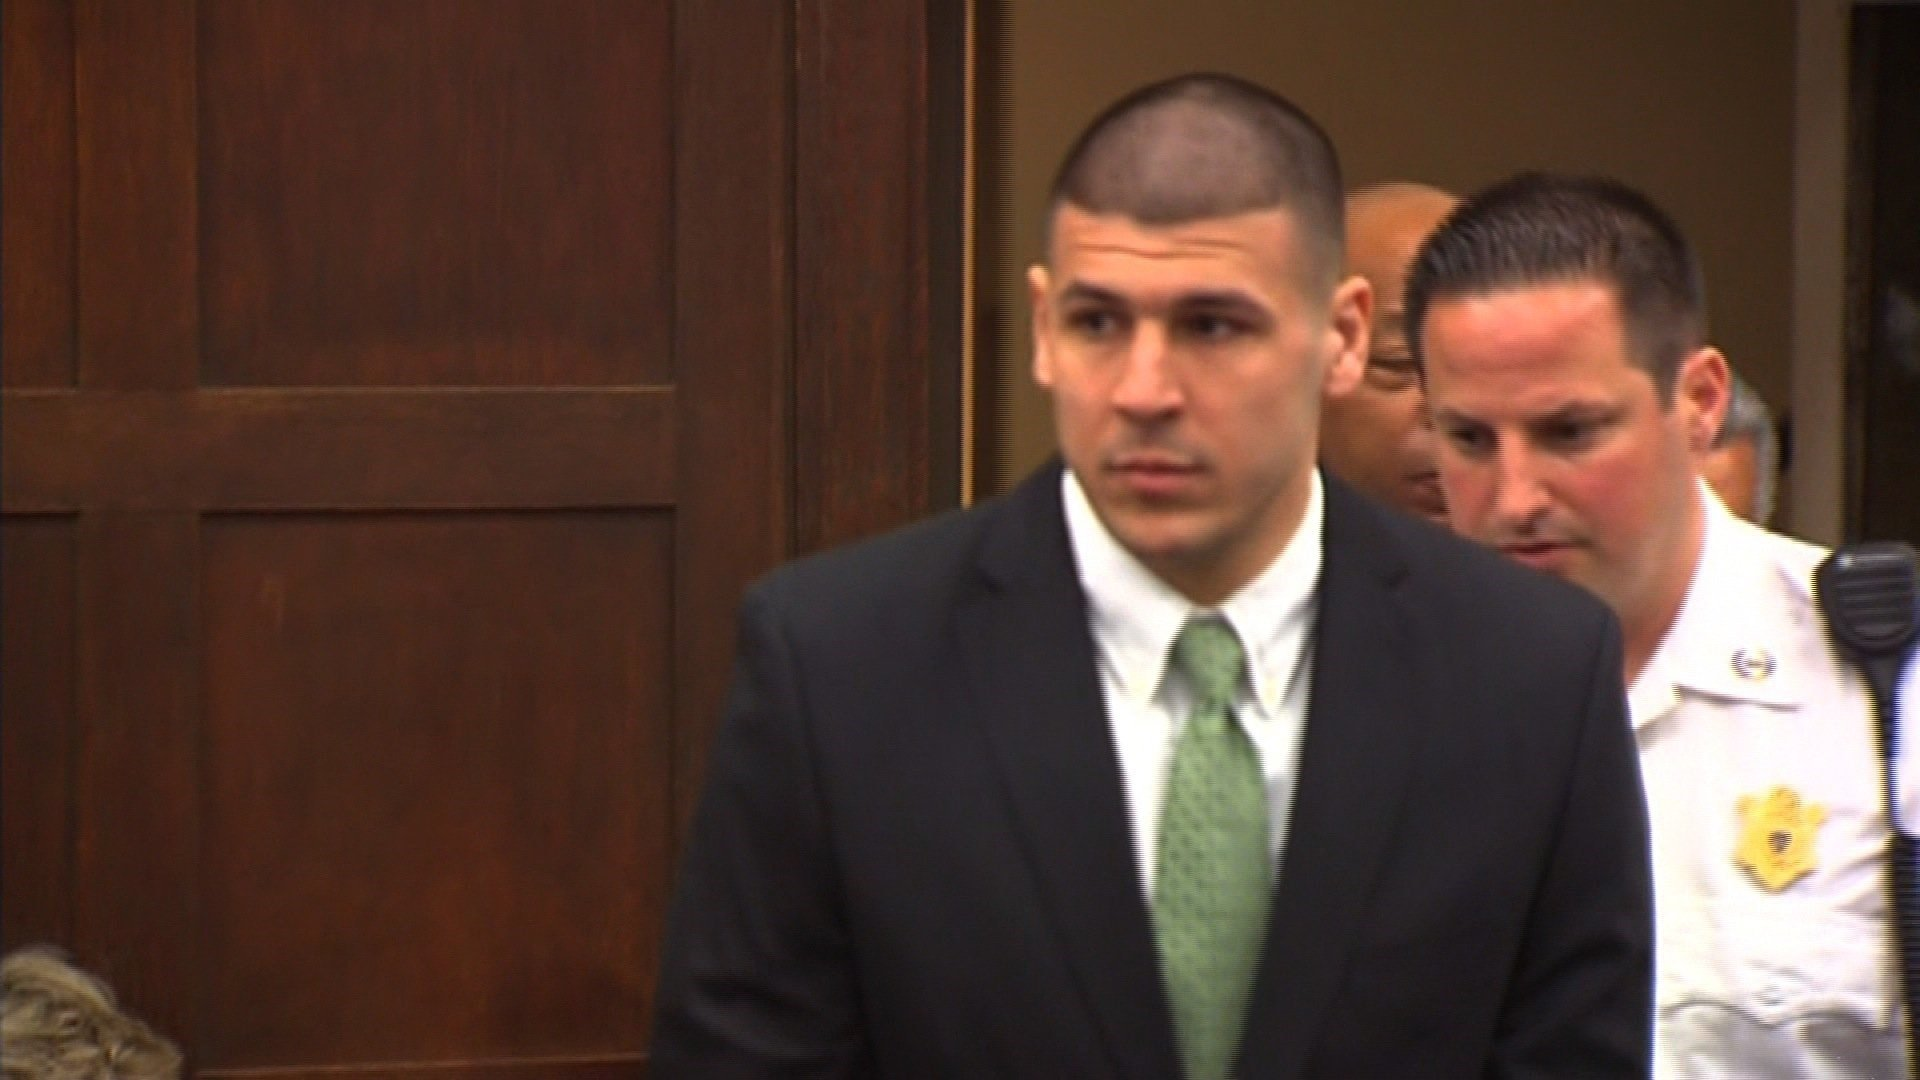 Prosecutors appeal Hernandez's voided murder conviction